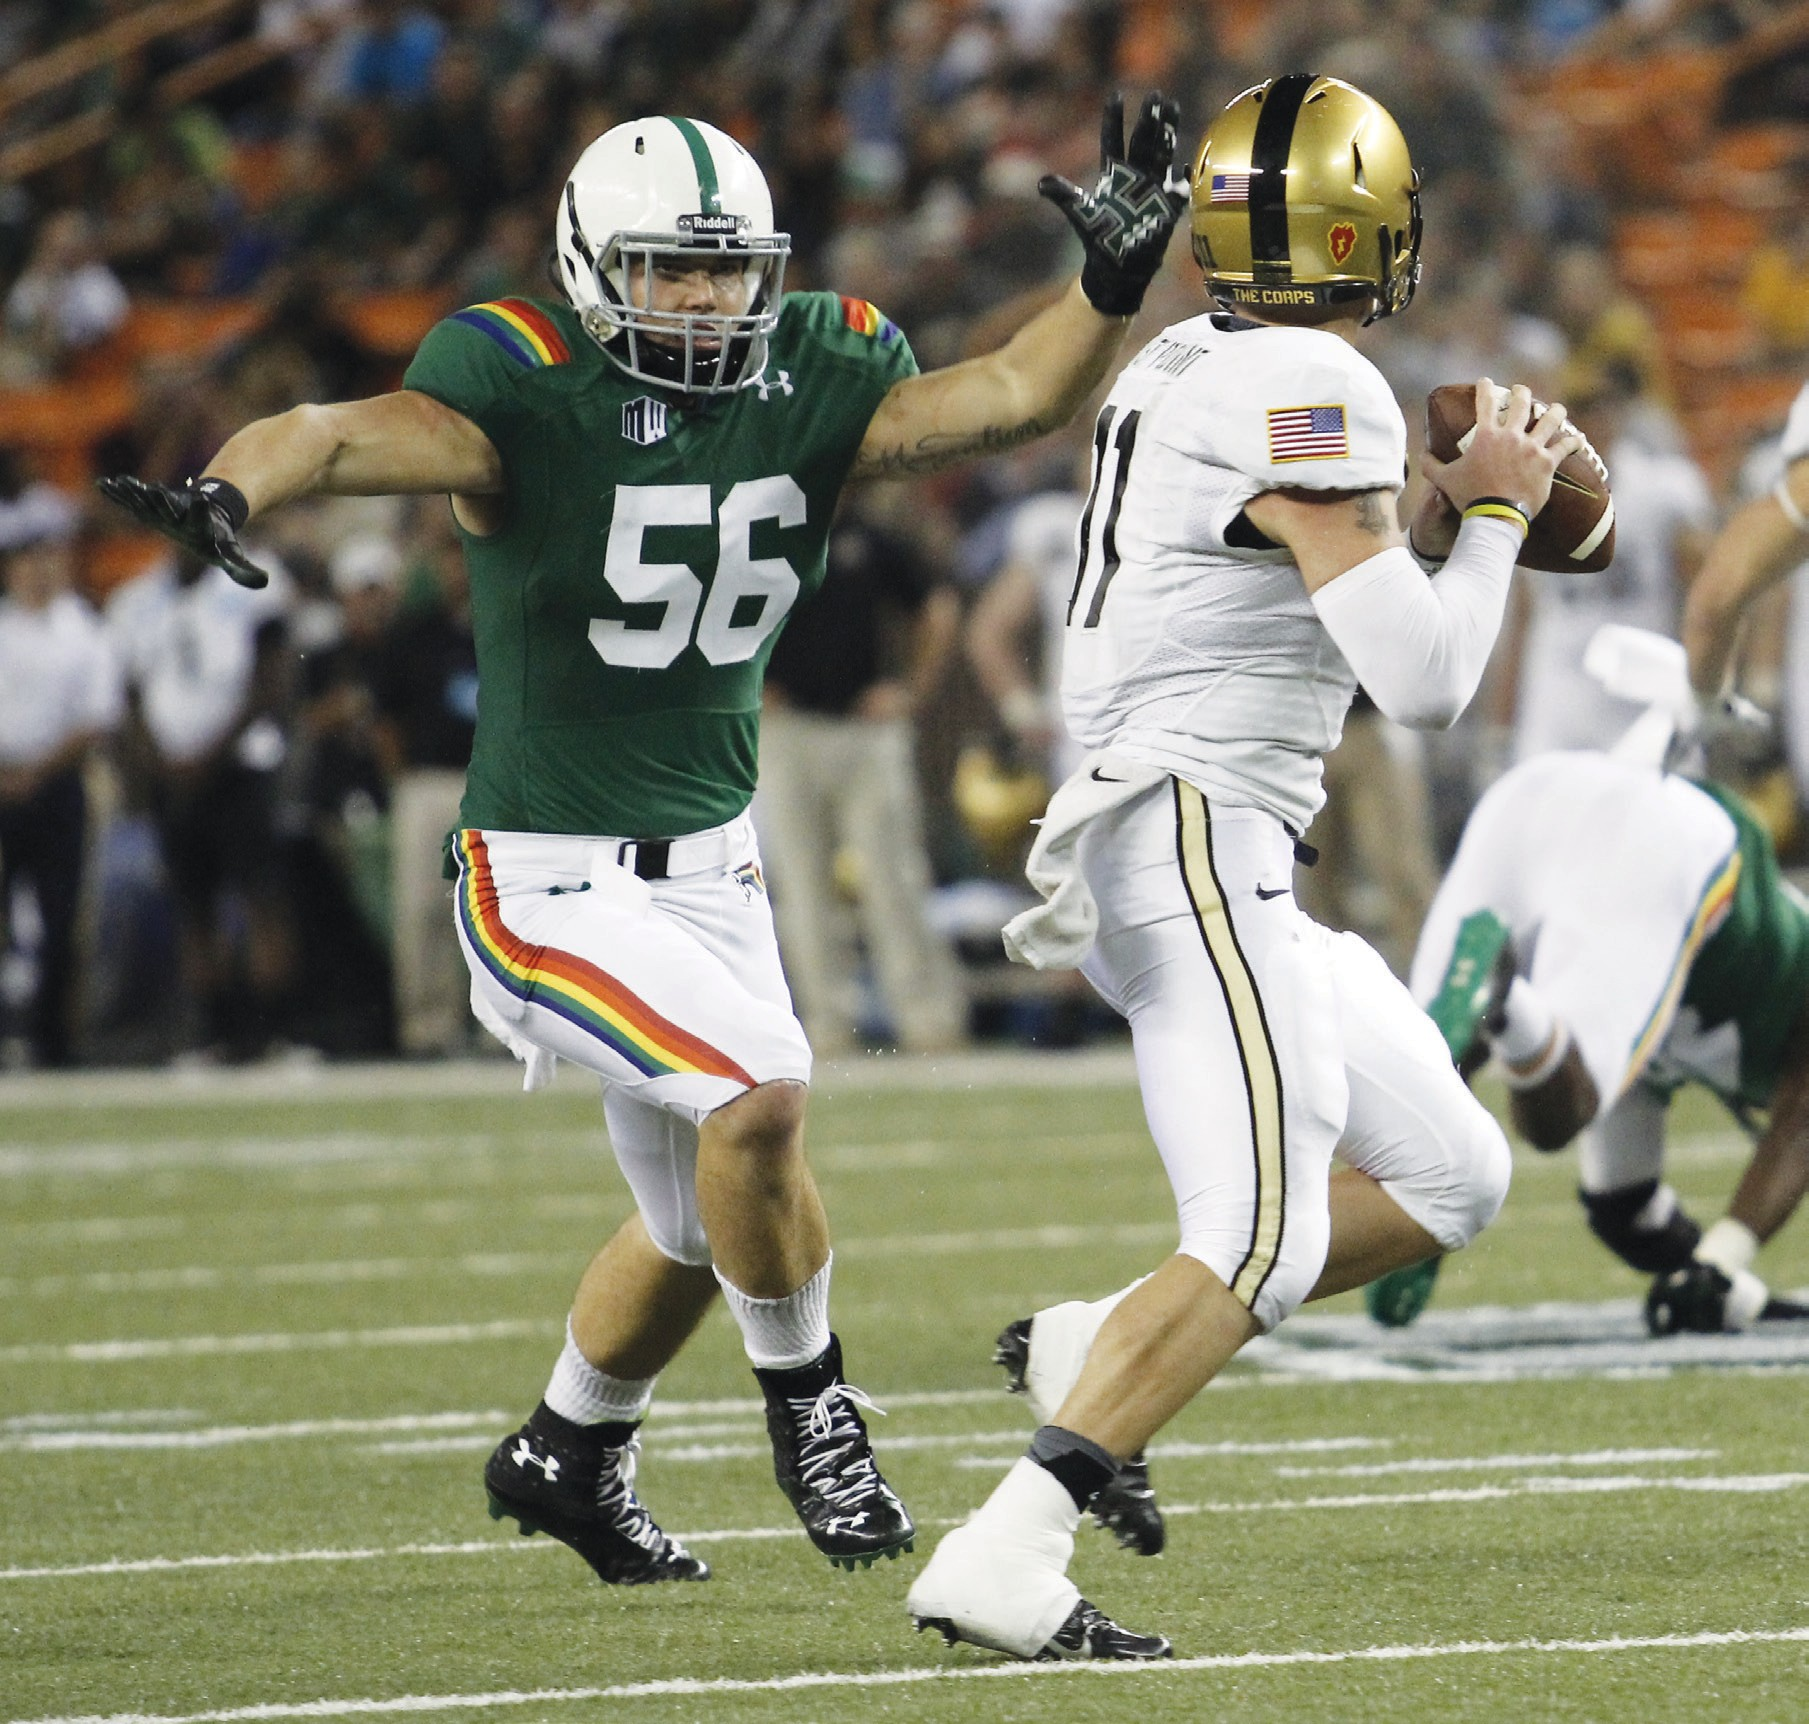 THE RAINBOW WARRIOR—Brenden Daley, a 2009 Moorpark High graduate, went on to play football for Ventura College, the University of Hawaii and the Atlanta Falcons. He earned a bachelor's degree in sociology from Hawaii, and he was working on a master's degree at the time of his death last week. Photos courtesy of University of Hawaii athletics